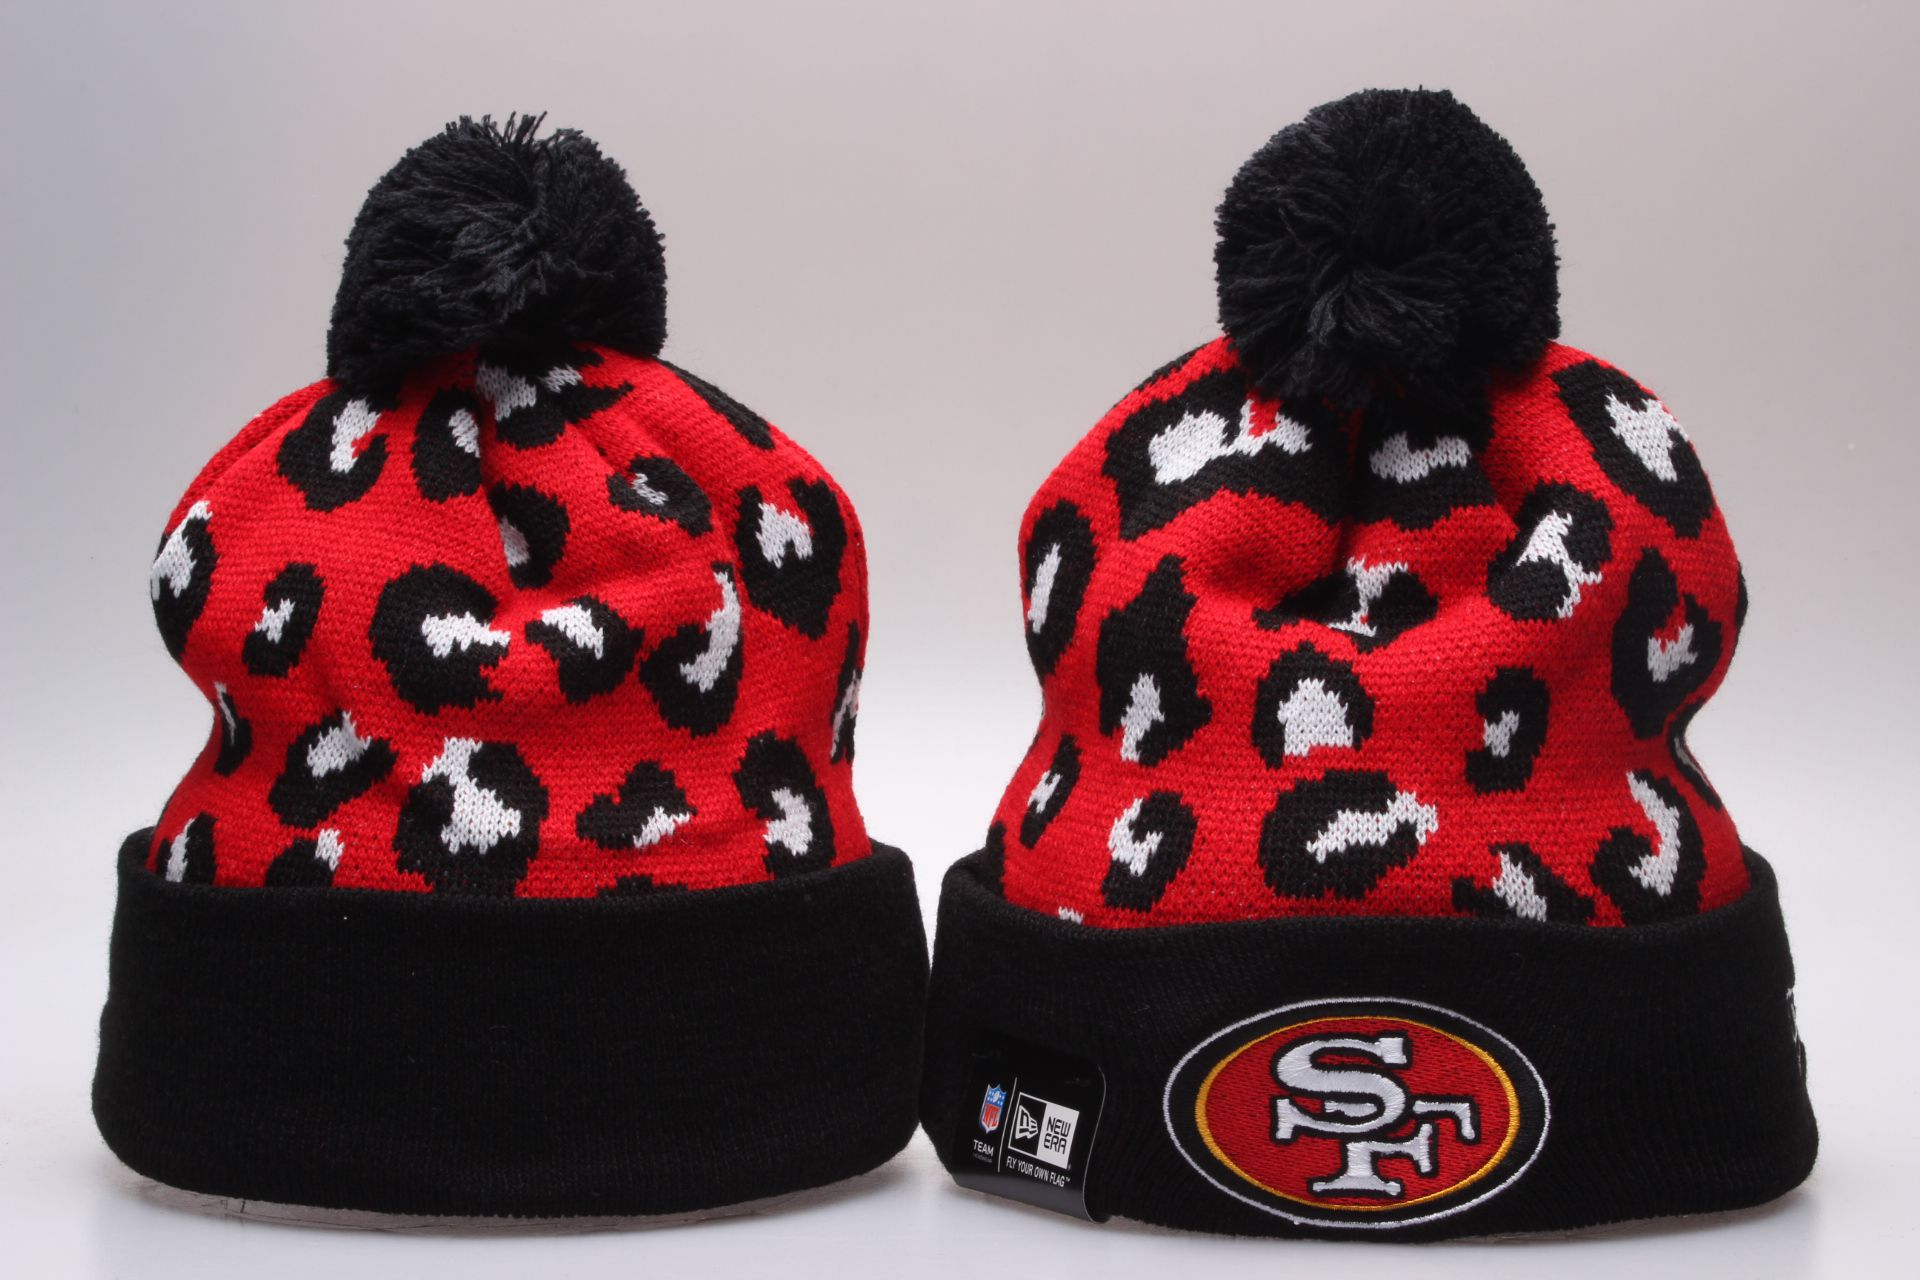 NFL San Francisco 49ers Beanie hot hat6